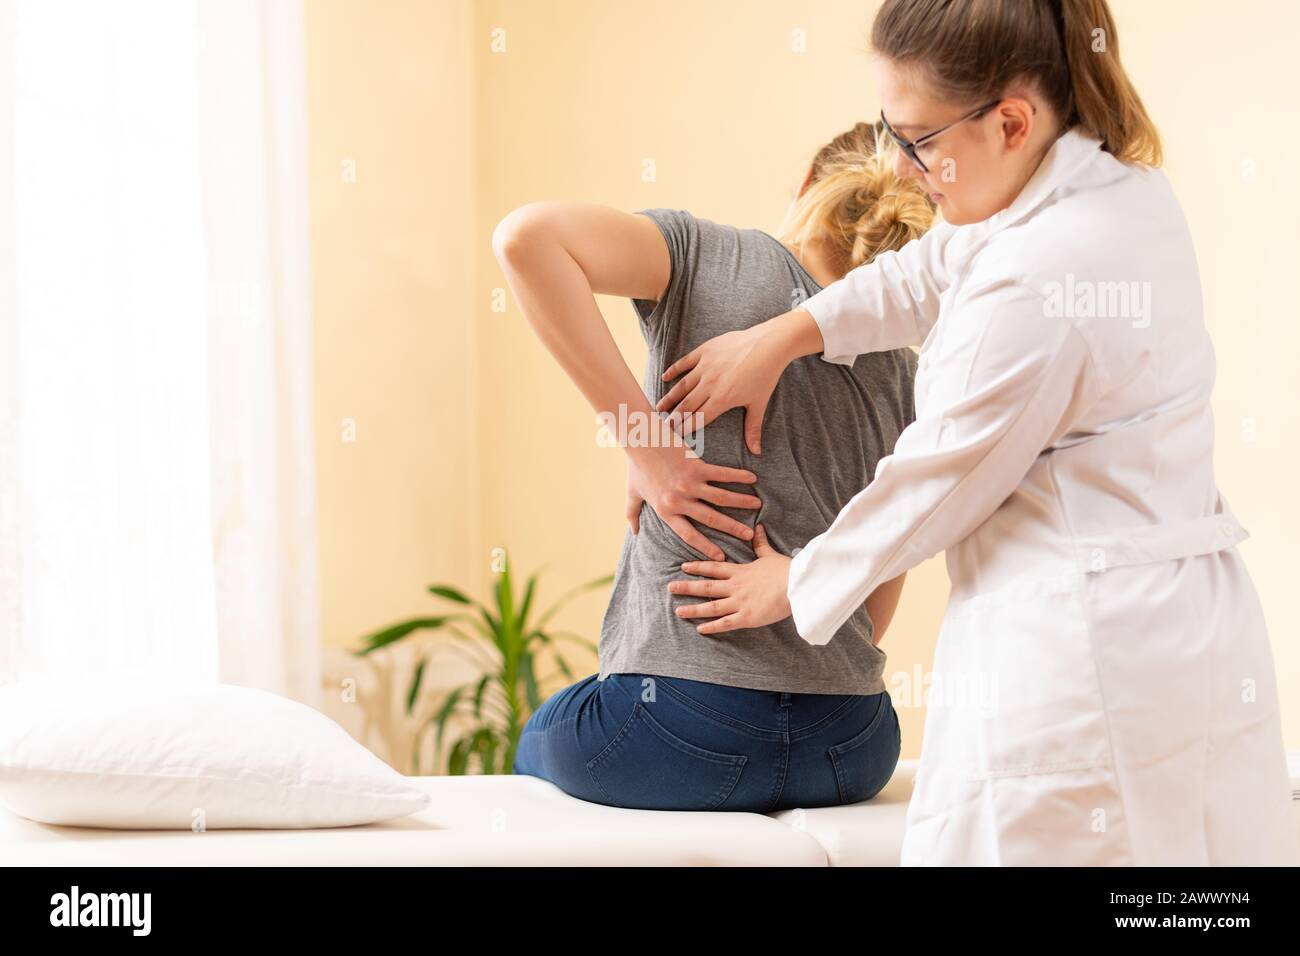 Female physiotherapist or a chiropractor examining patients back. Physiotherapy, rehabilitation concept. Stock Photo